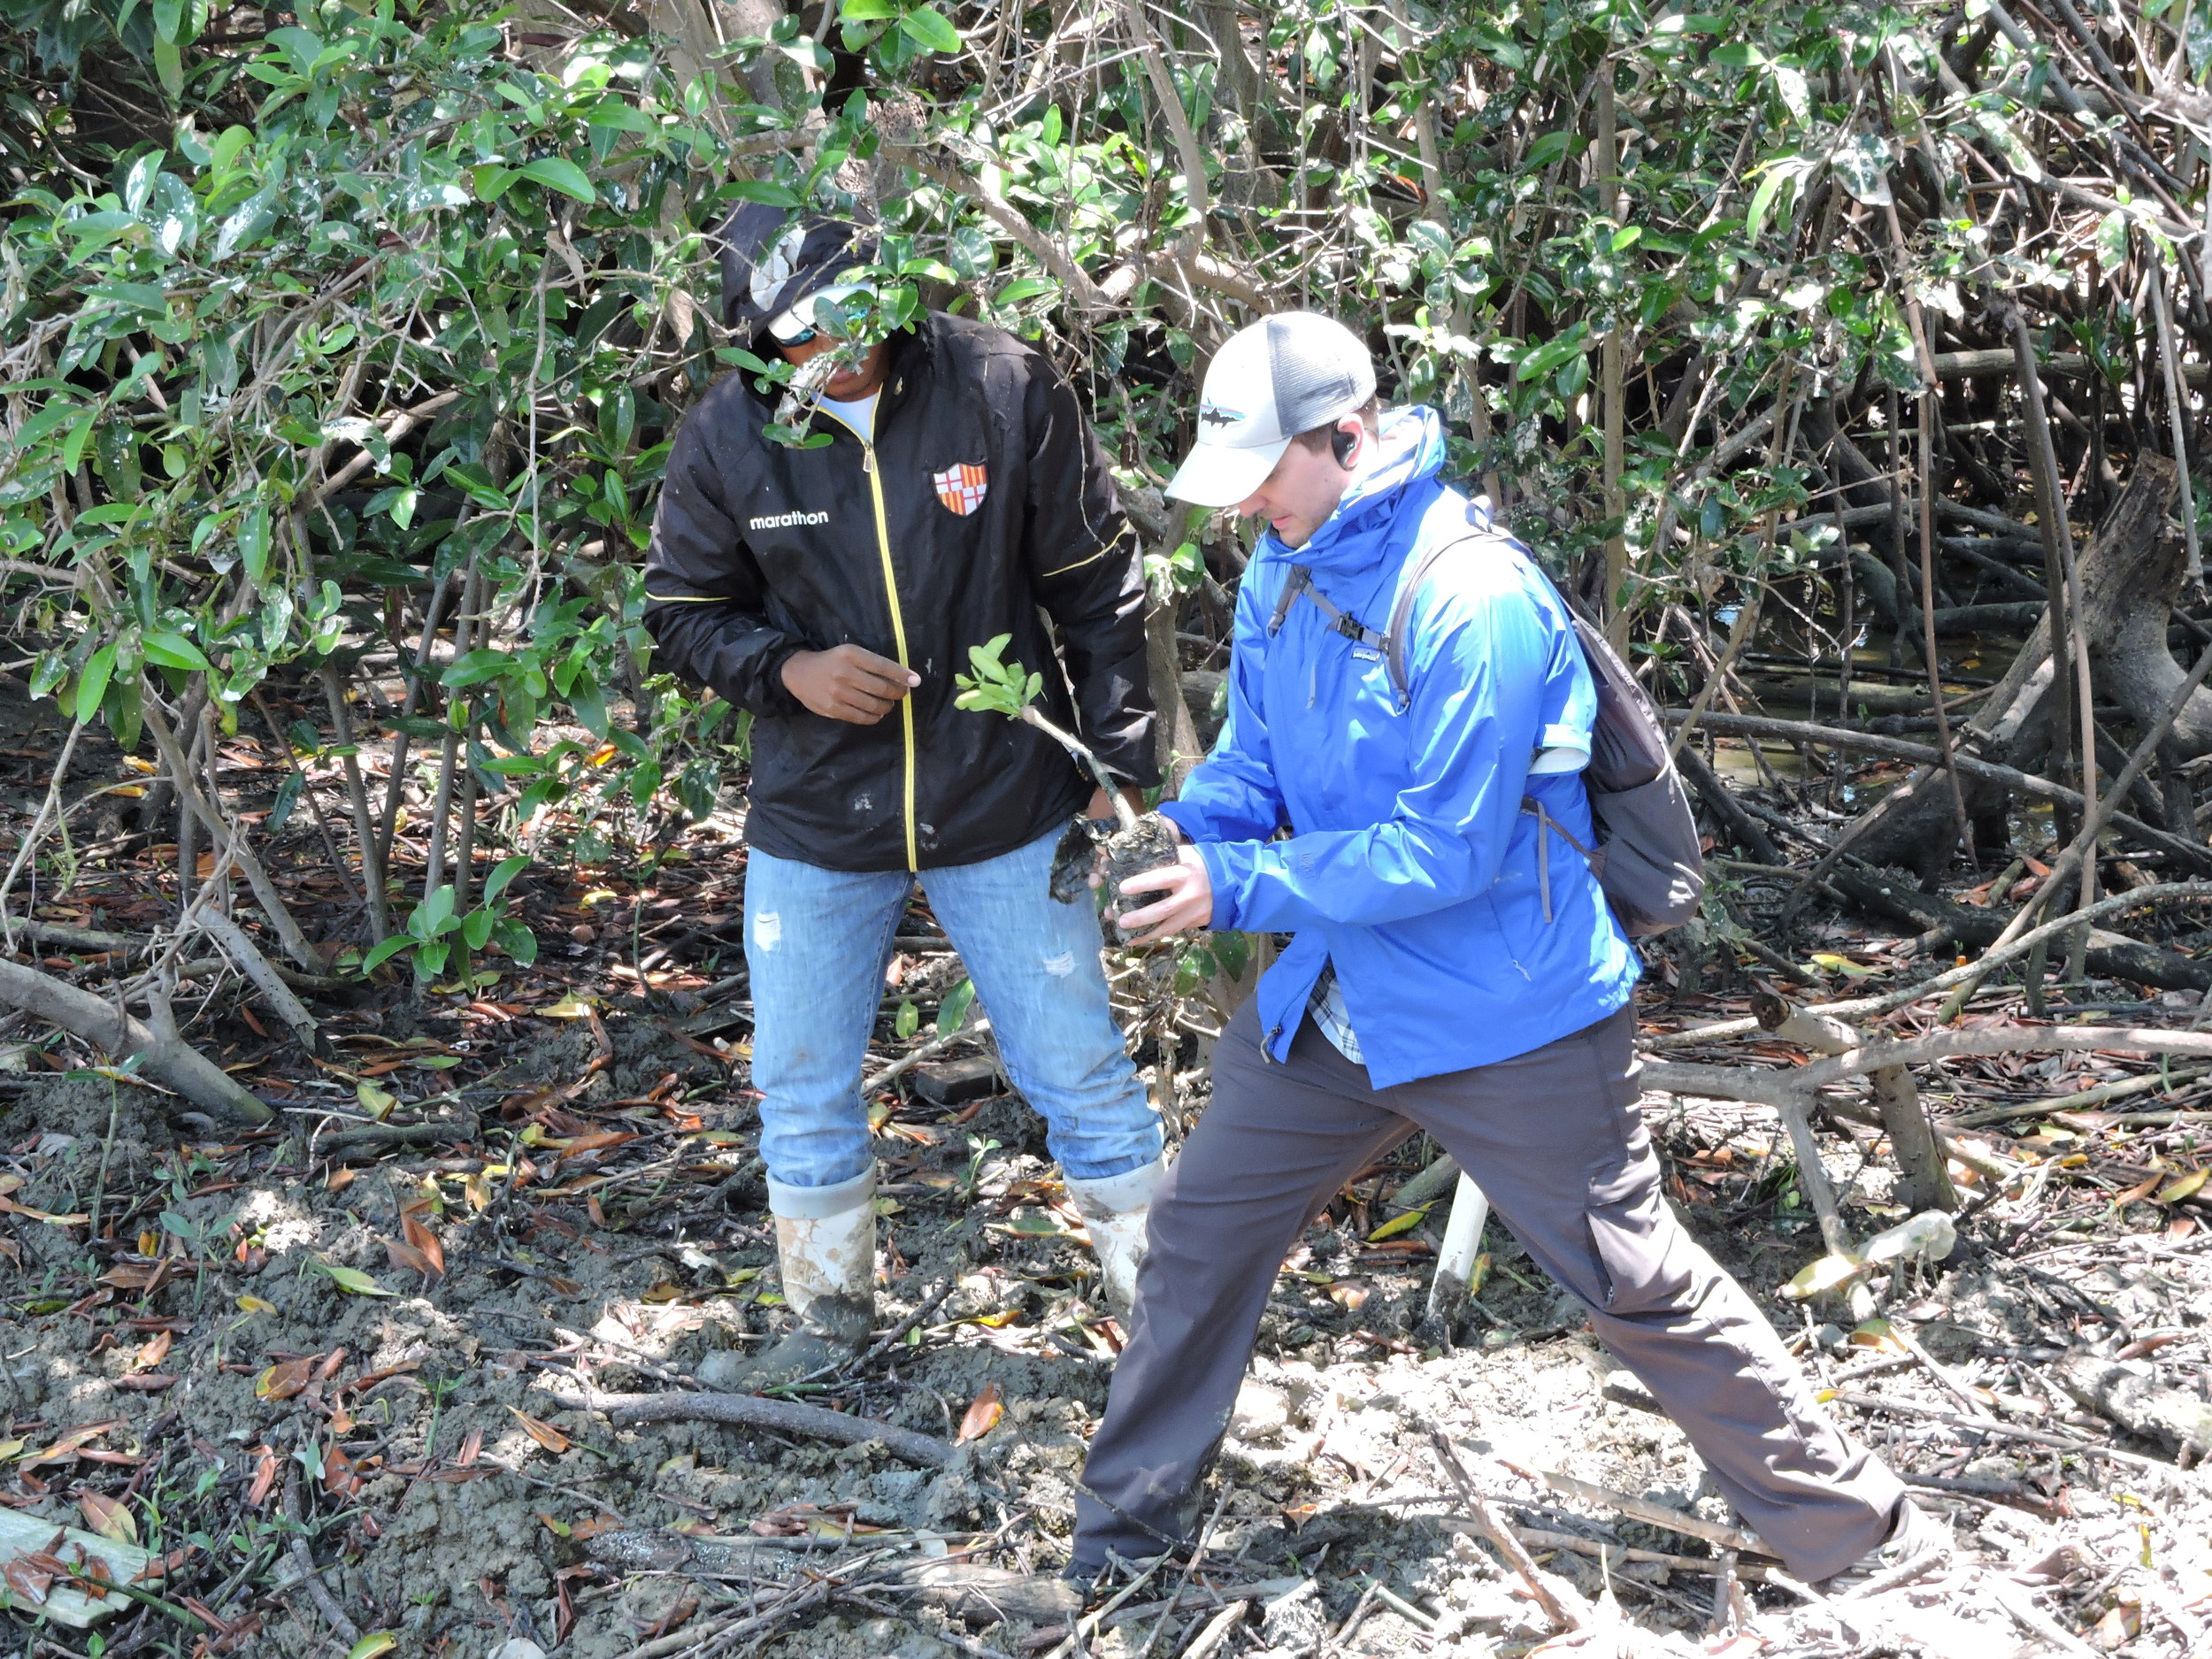 B4Nature participant Brian Schoening, Program Manager of Environmental Sustainability with Northrop Grumman Corporation, planting a mangrove in the El Morro Mangrove Wildlife Refuge.